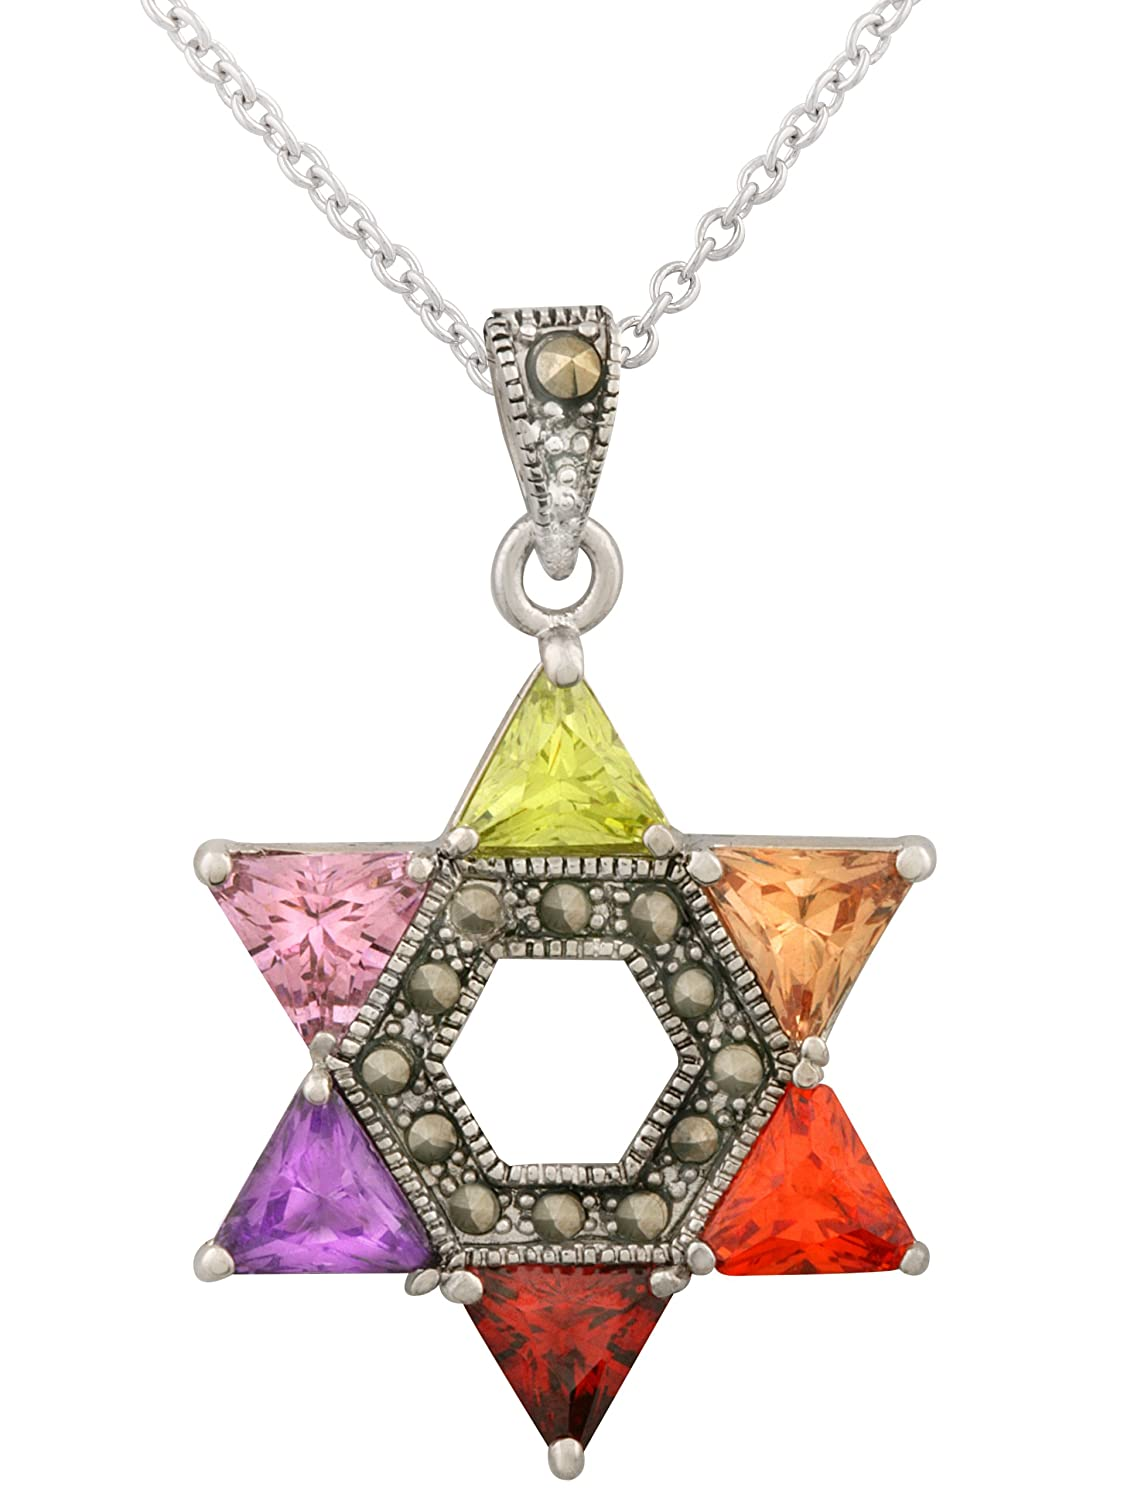 bling pchaistar ash starofdavid chain pendant of jewelry magen jewish david star pk beaded silver necklace sterling